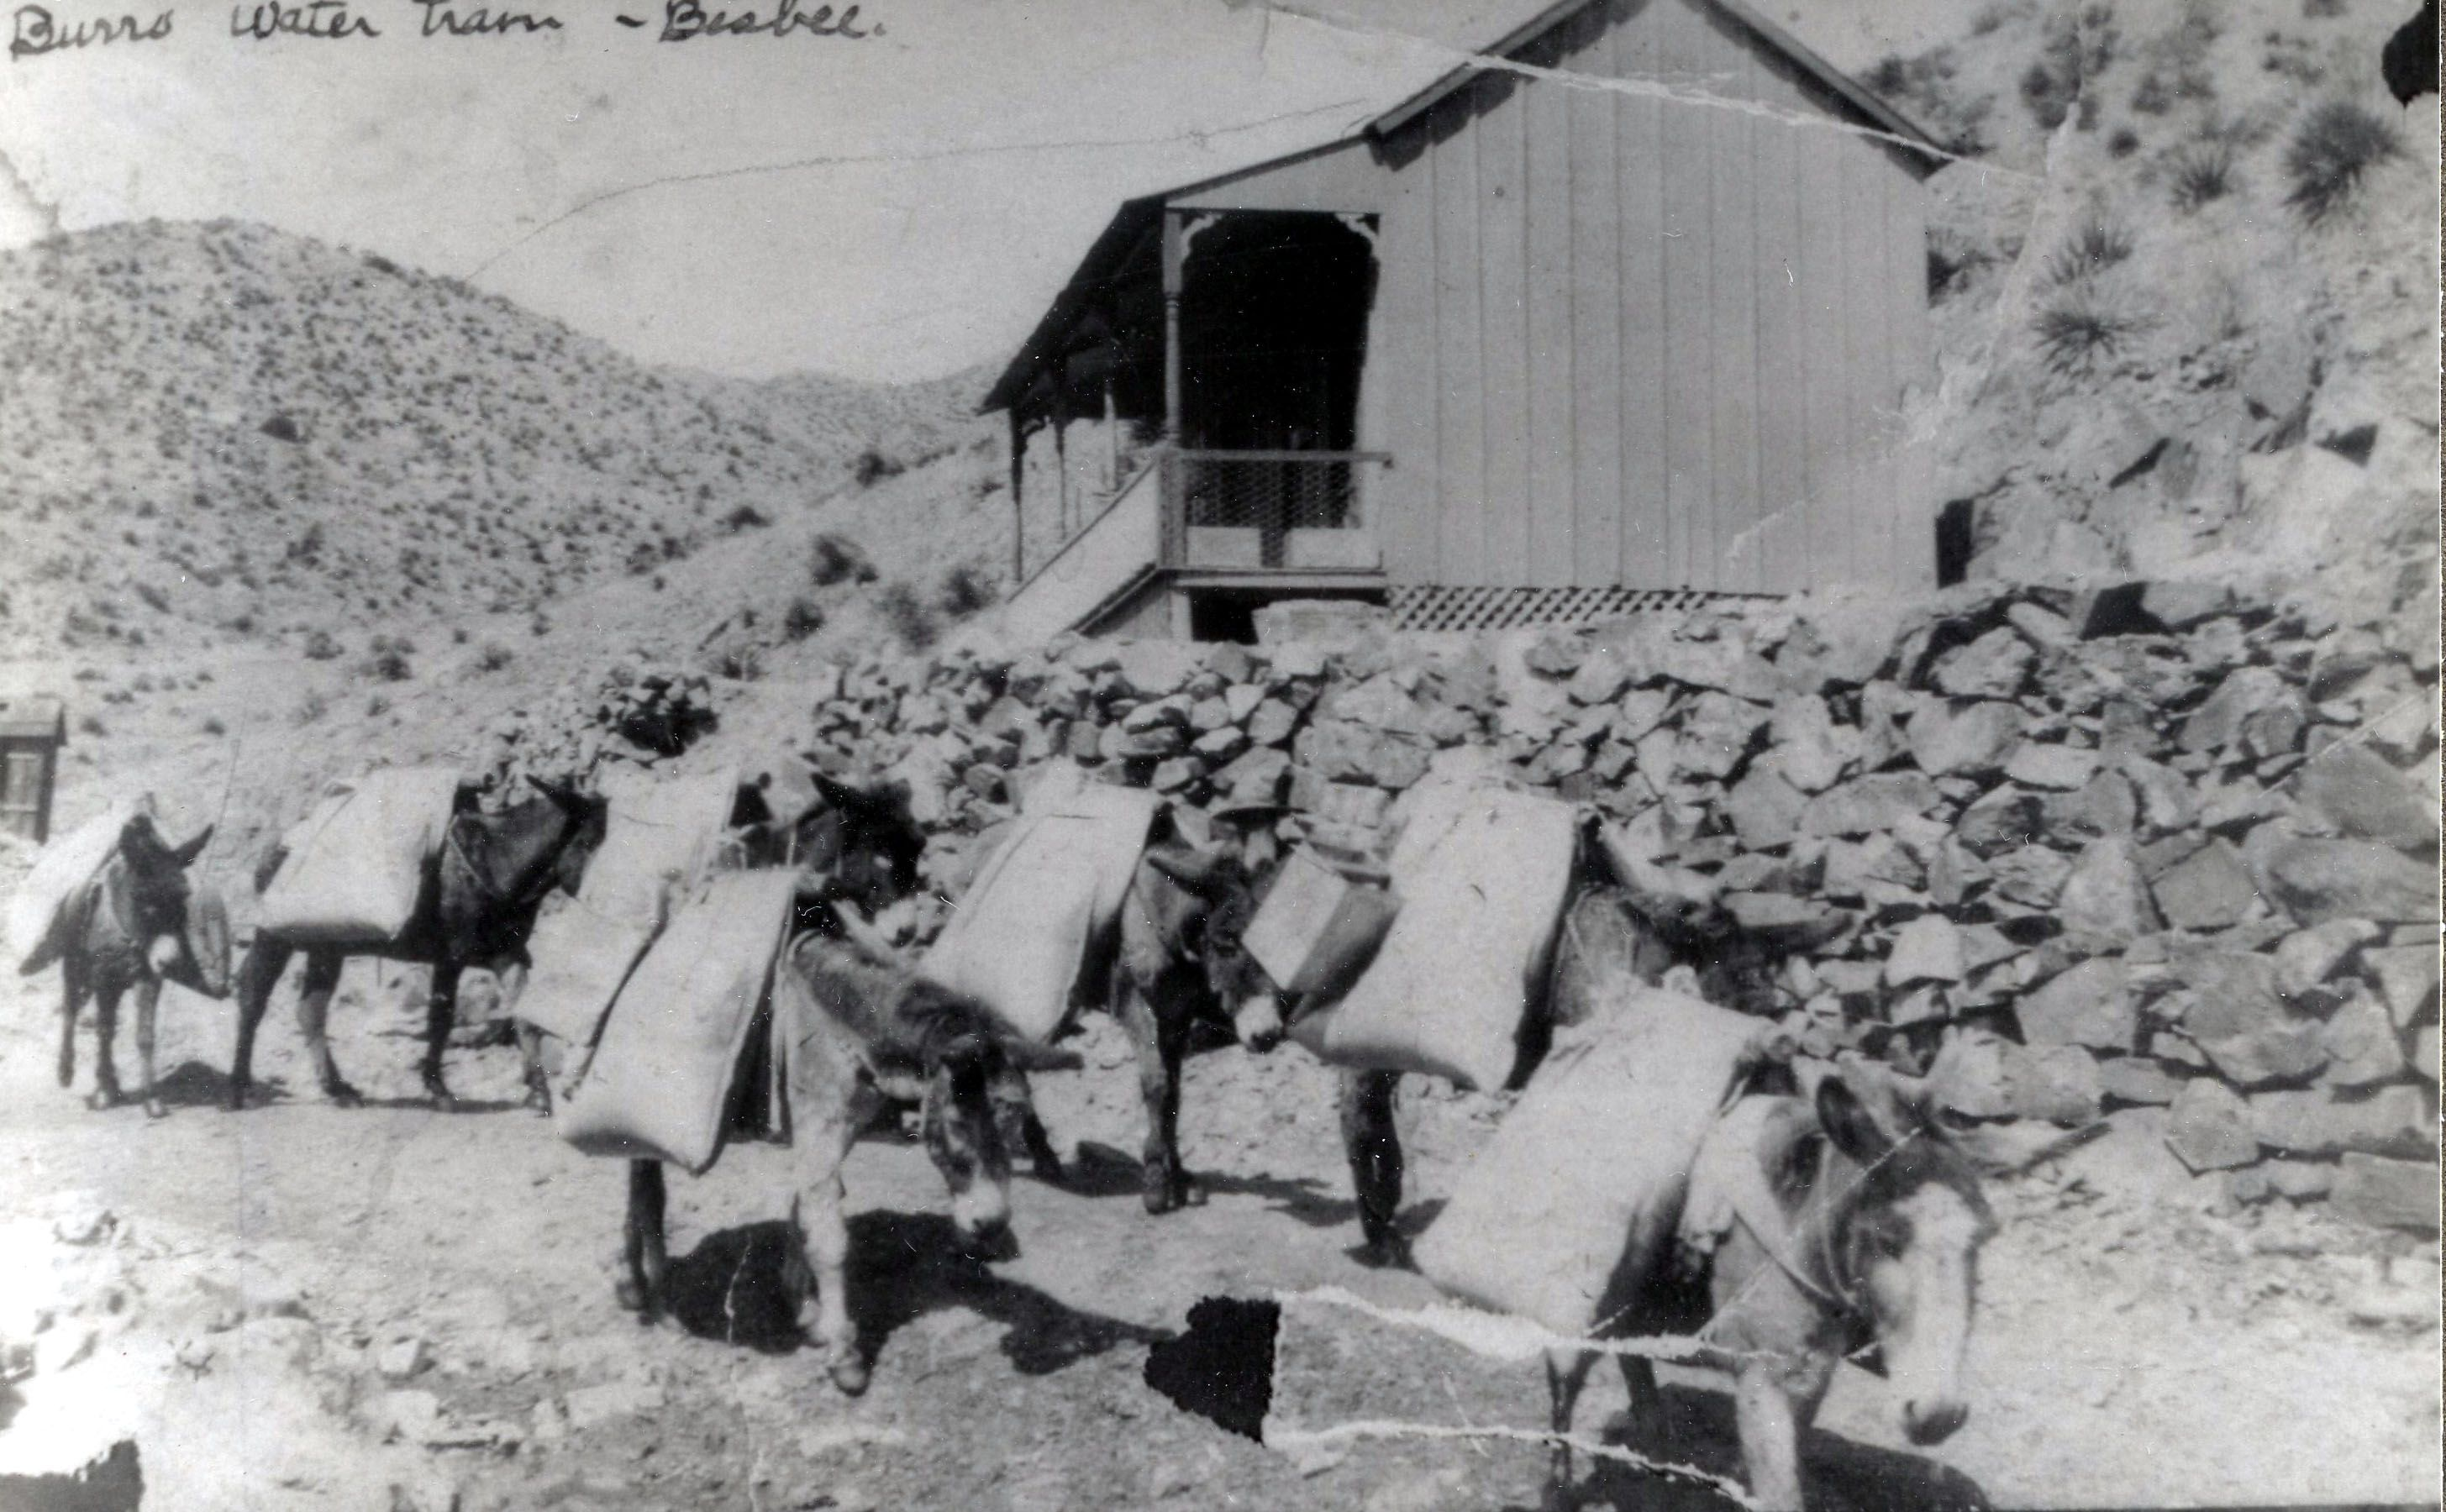 Burros were used to haul water to the residents of Bisbee, Arizona before running water was available in homes. Here we have a 1905 image of burros transporting water in the upper end of Brewery Gulch. This image is from the photograph collection of the Bisbee Mining Historical Museum. Discover more Bisbee, Arizona images and artifacts at www.facebook.com/BisbeeMuseum. #bisbee #arizona #burro #history